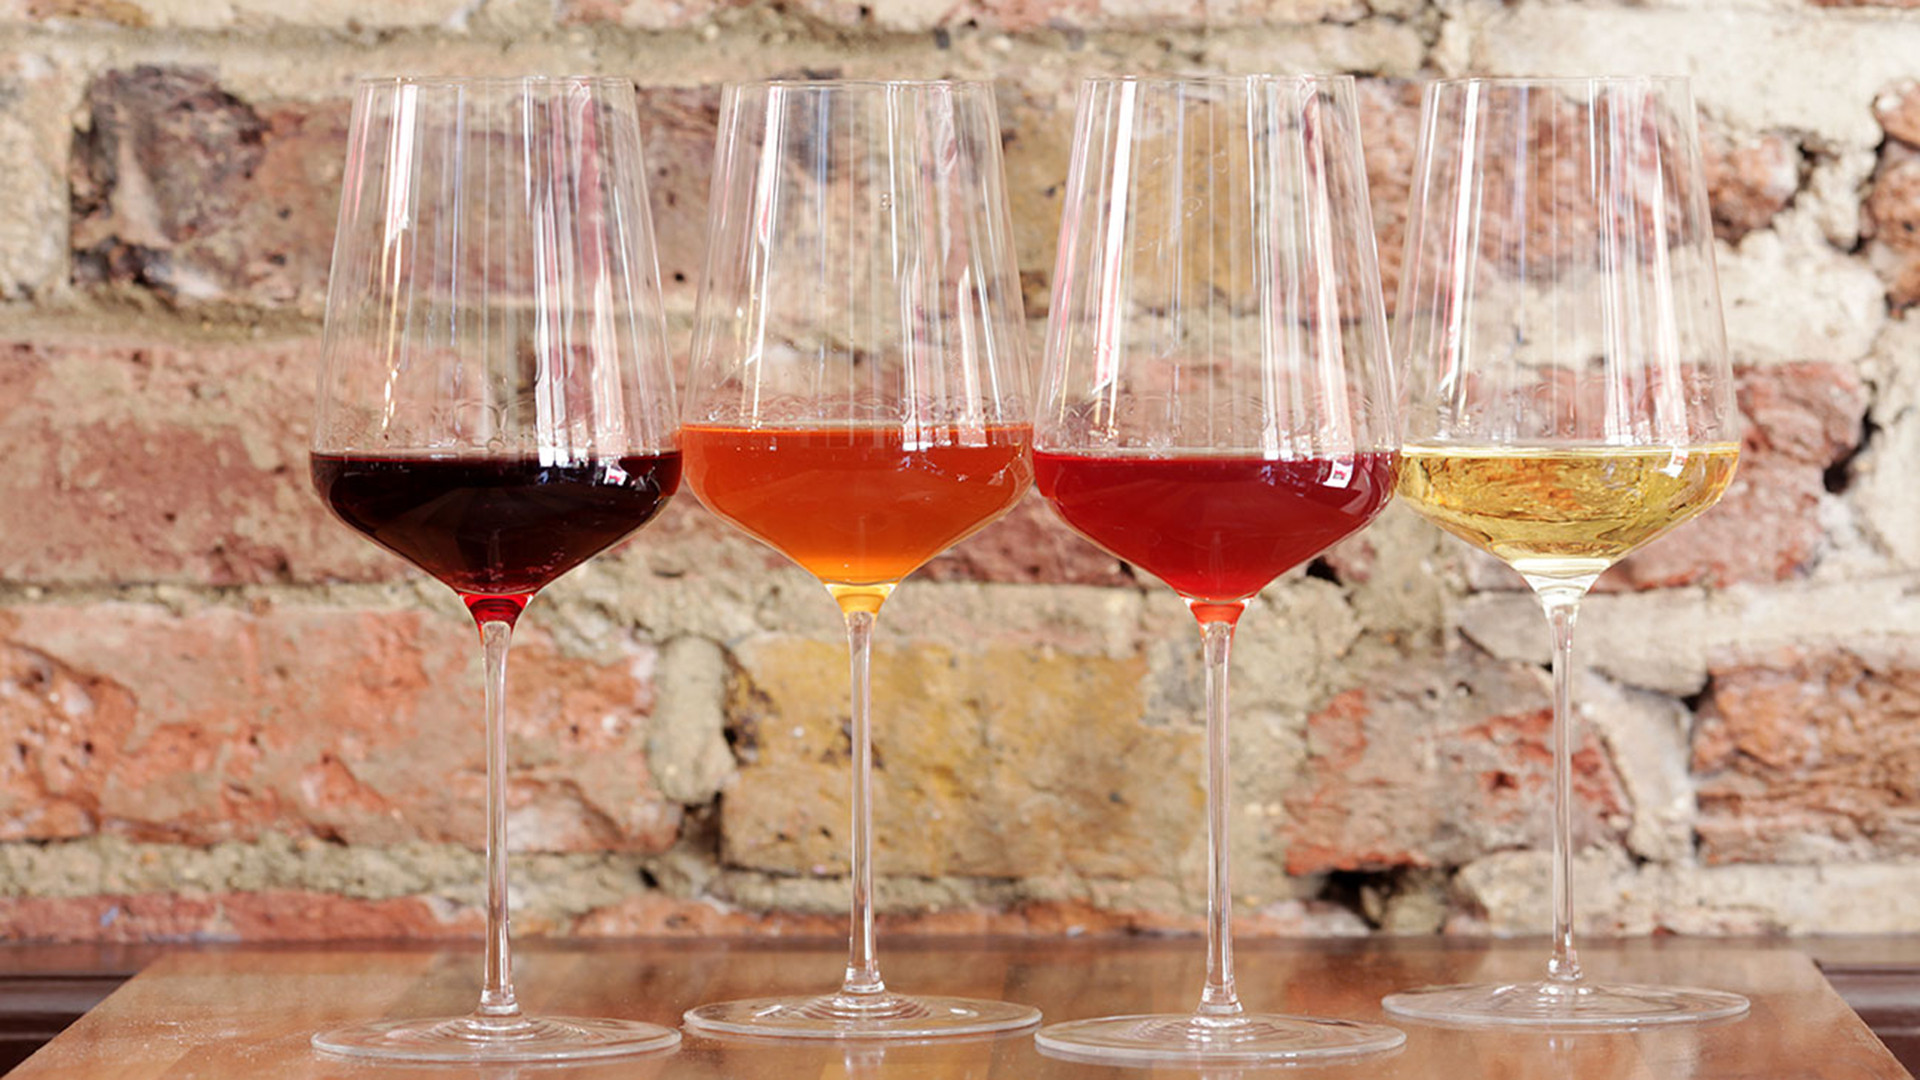 Natural wines from The Remedy